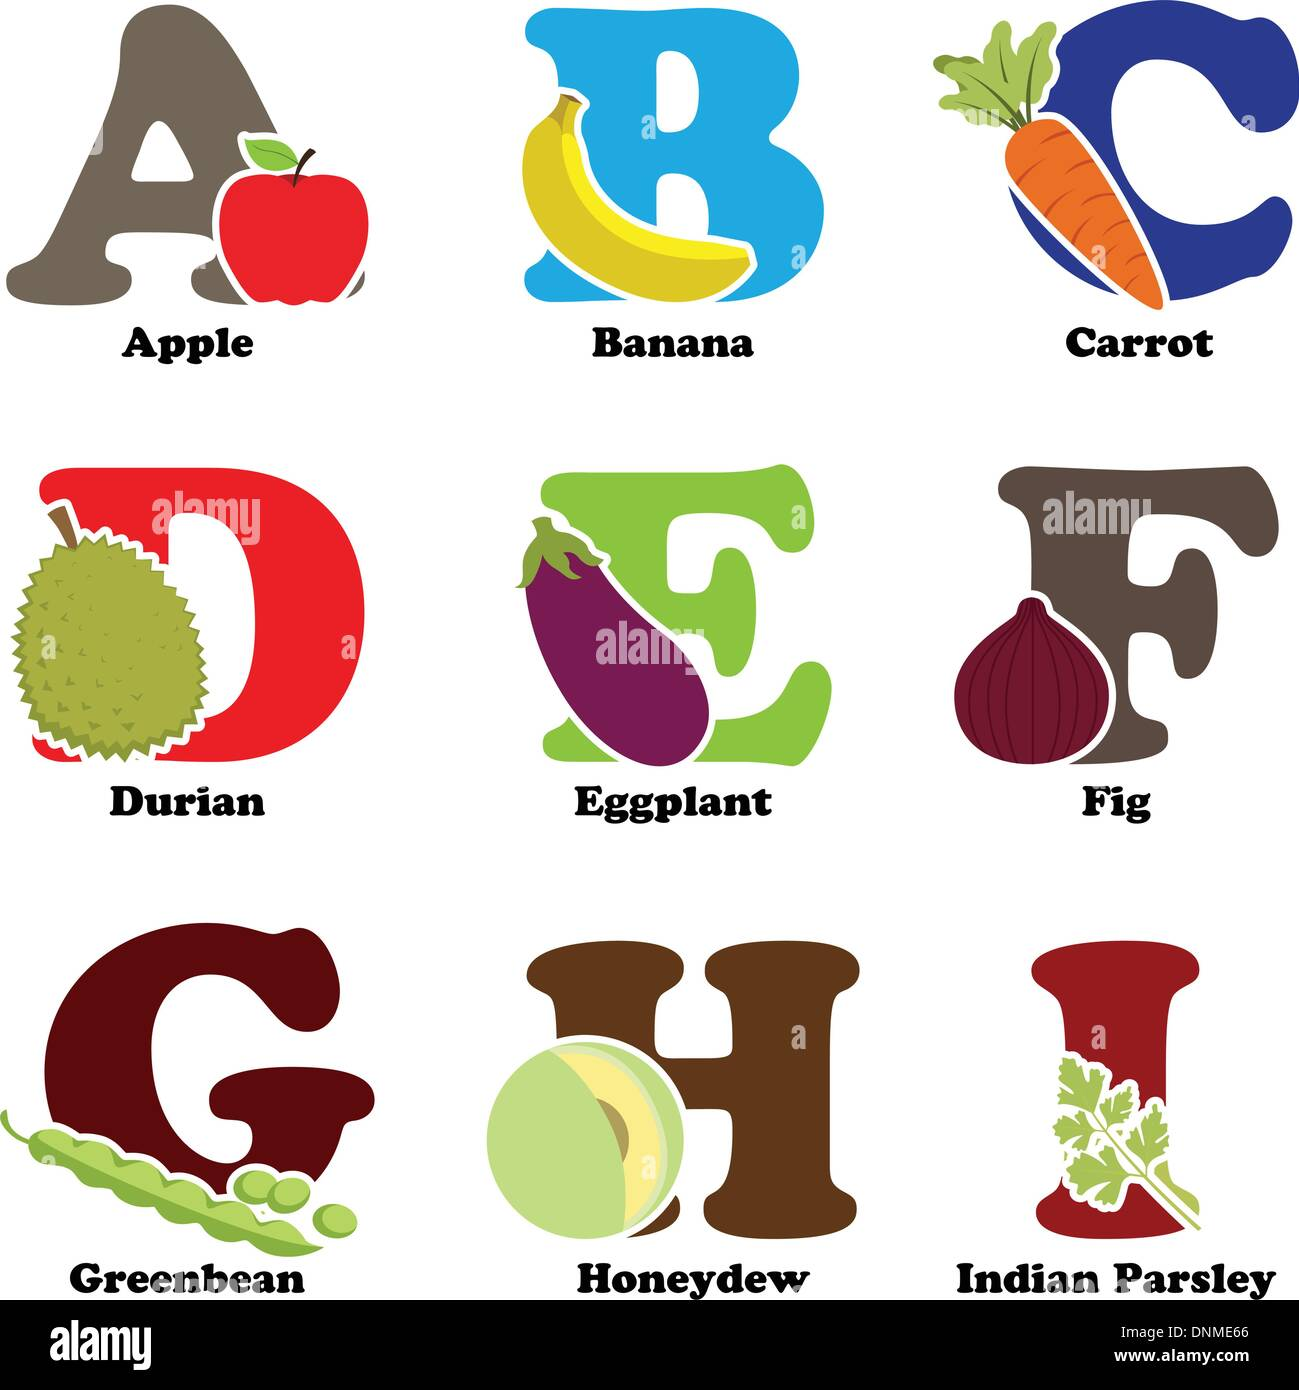 A vector illustration of fruit and vegetables in